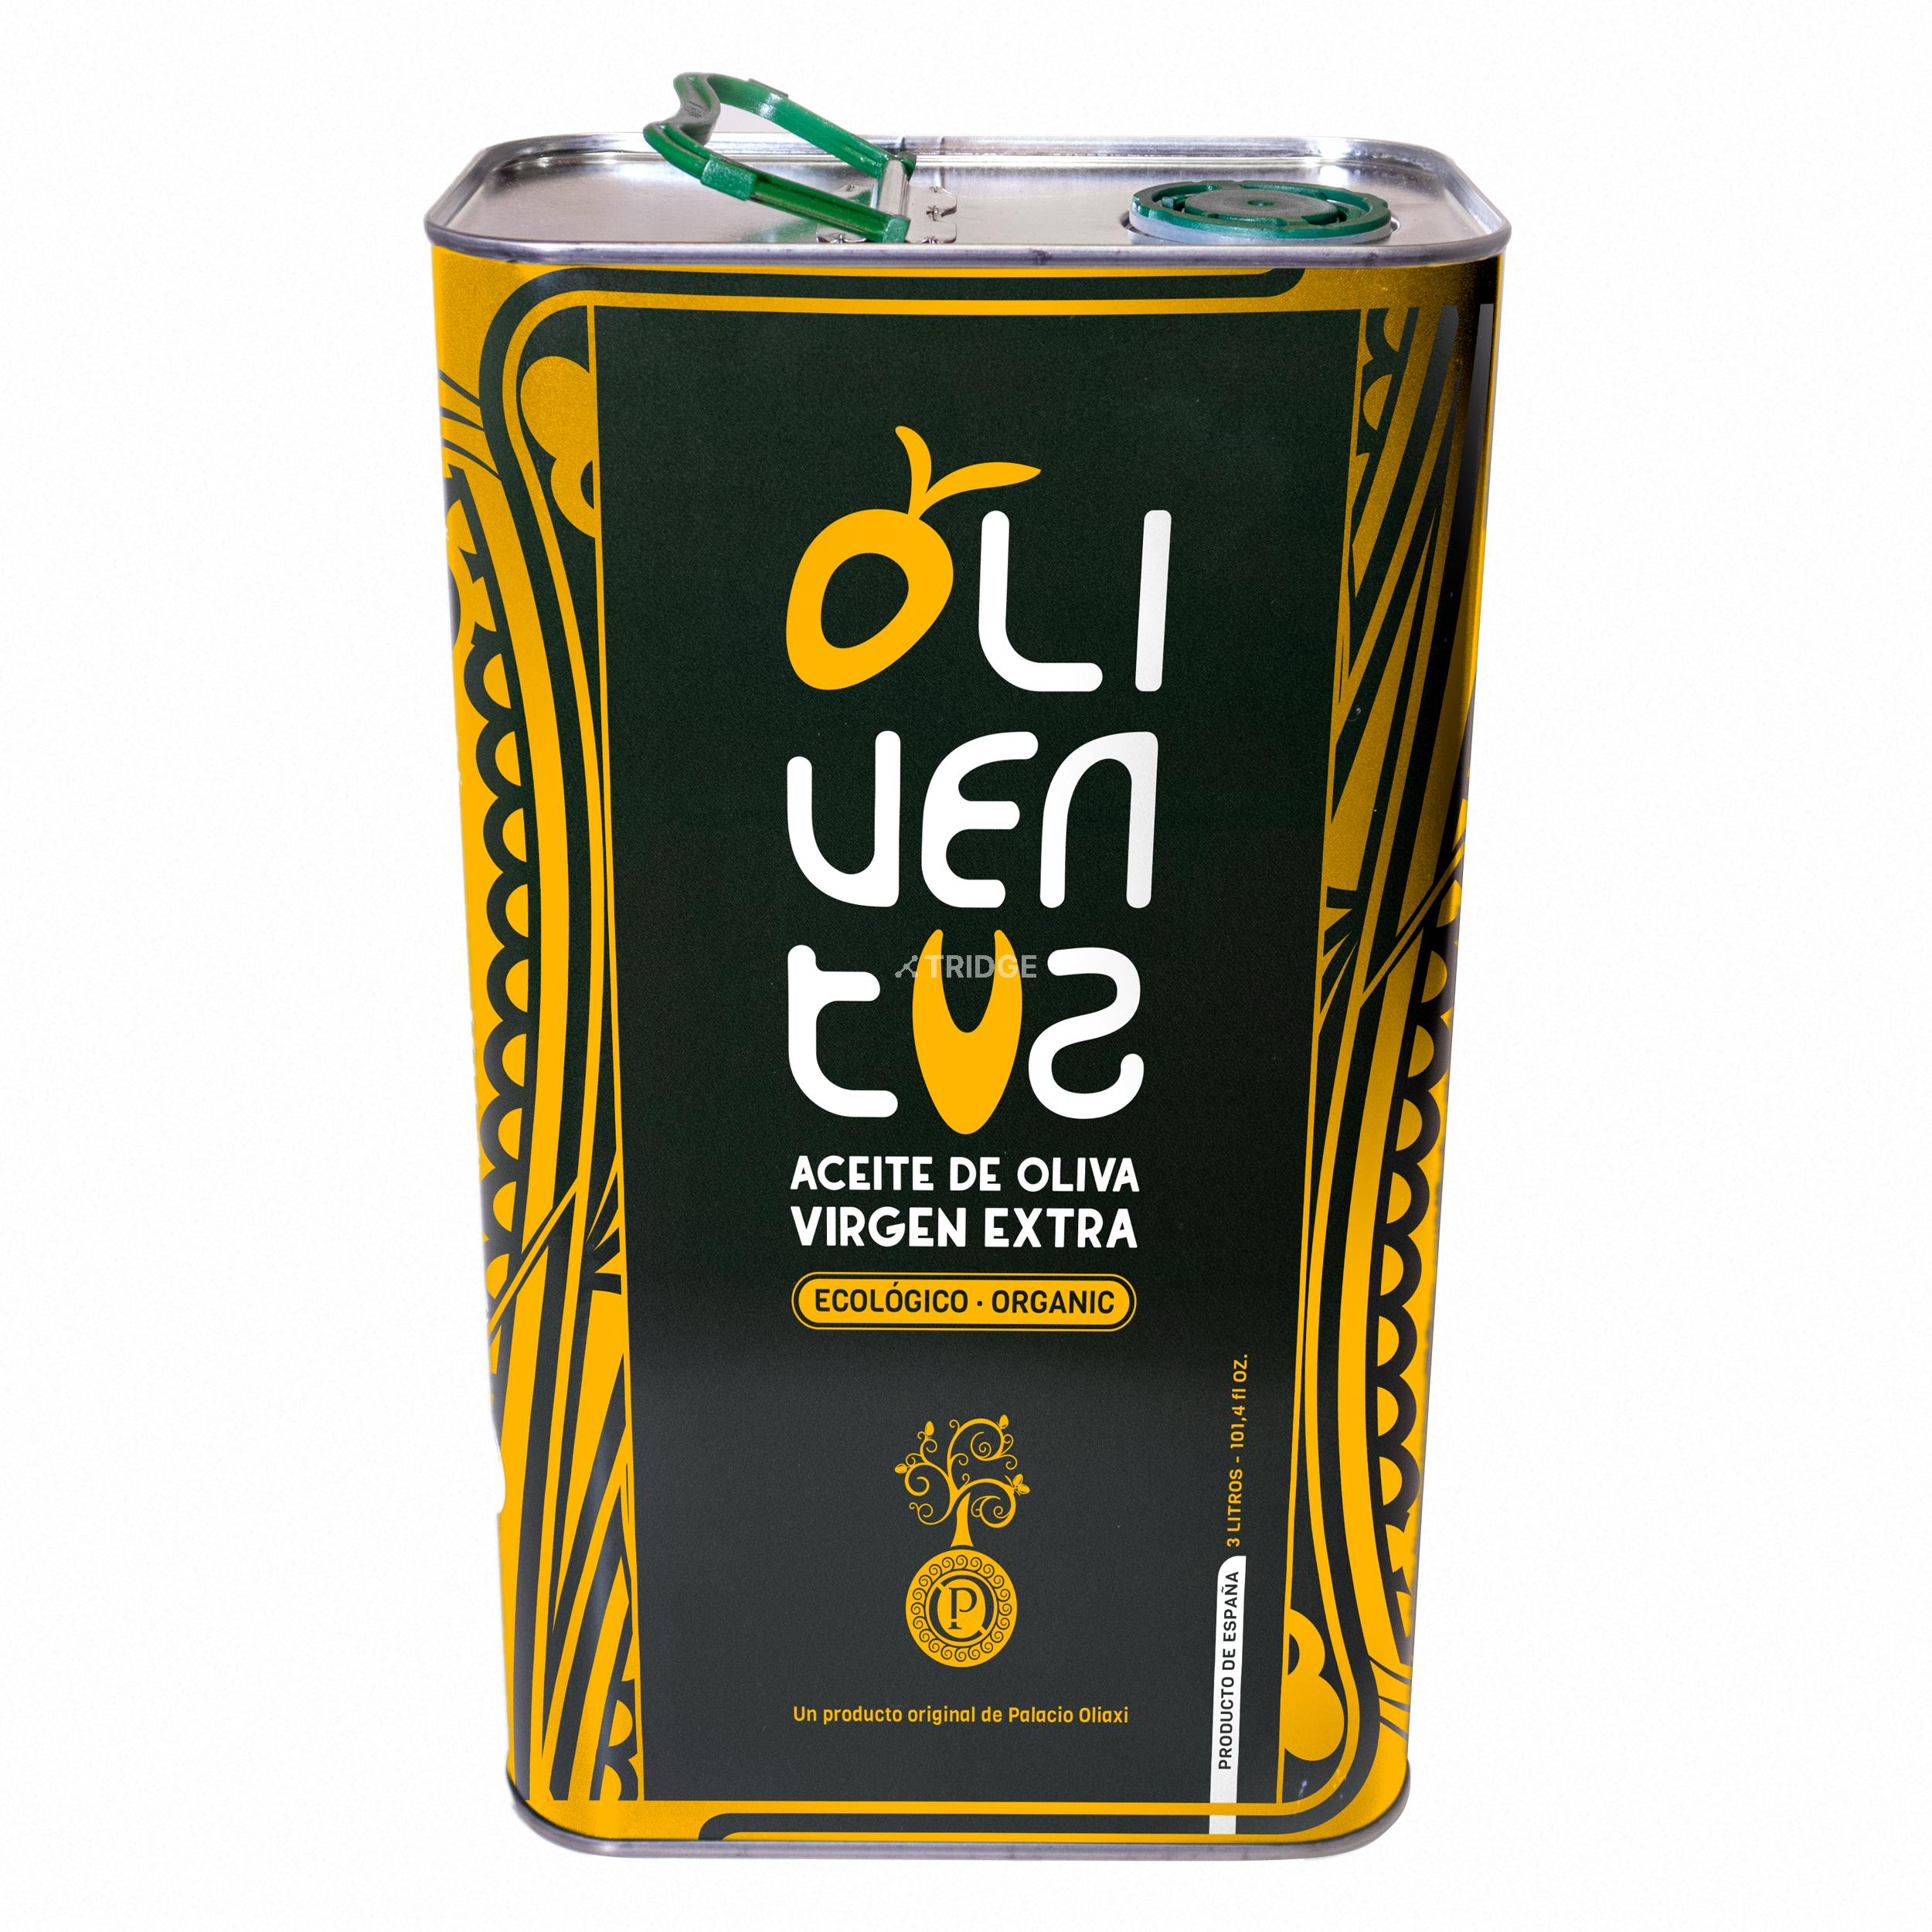 Oliventus 3 liters tin can